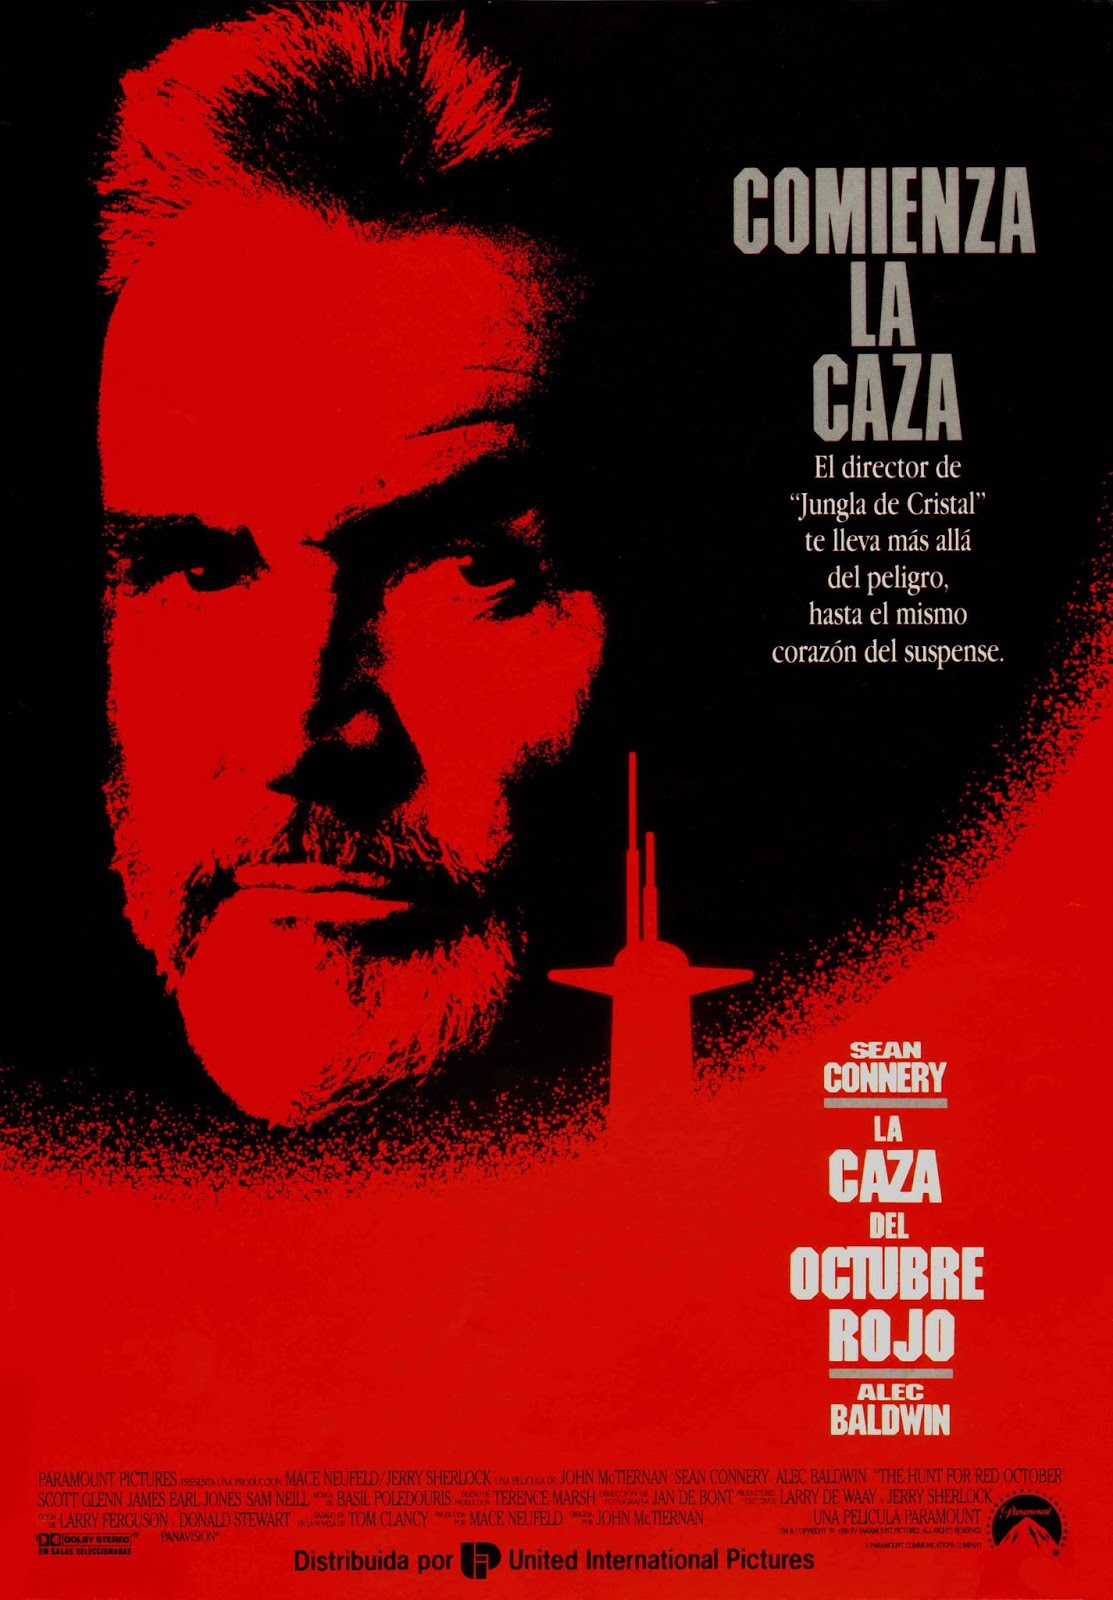 The Hunt for Red October (film) - Wikipedia